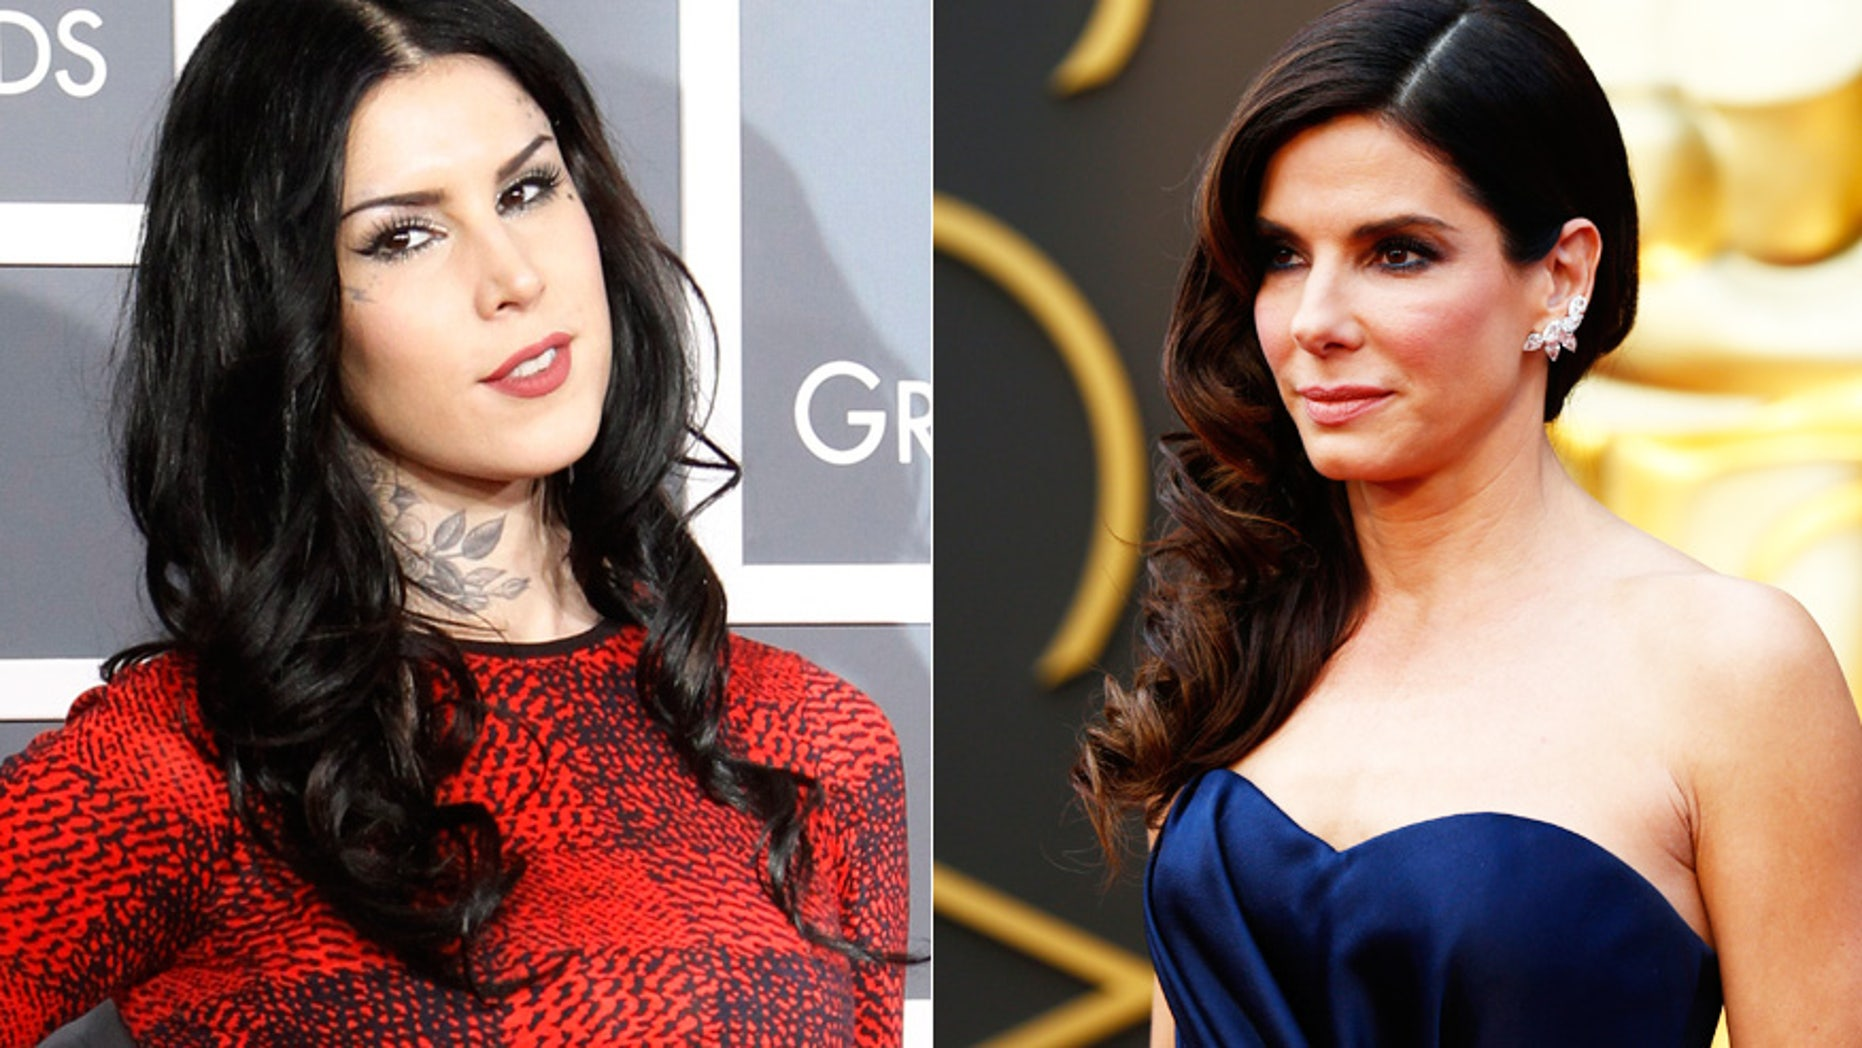 Kat Von D, left, and Sandra Bullock have both recently dealt with crazed fans and security concerns.